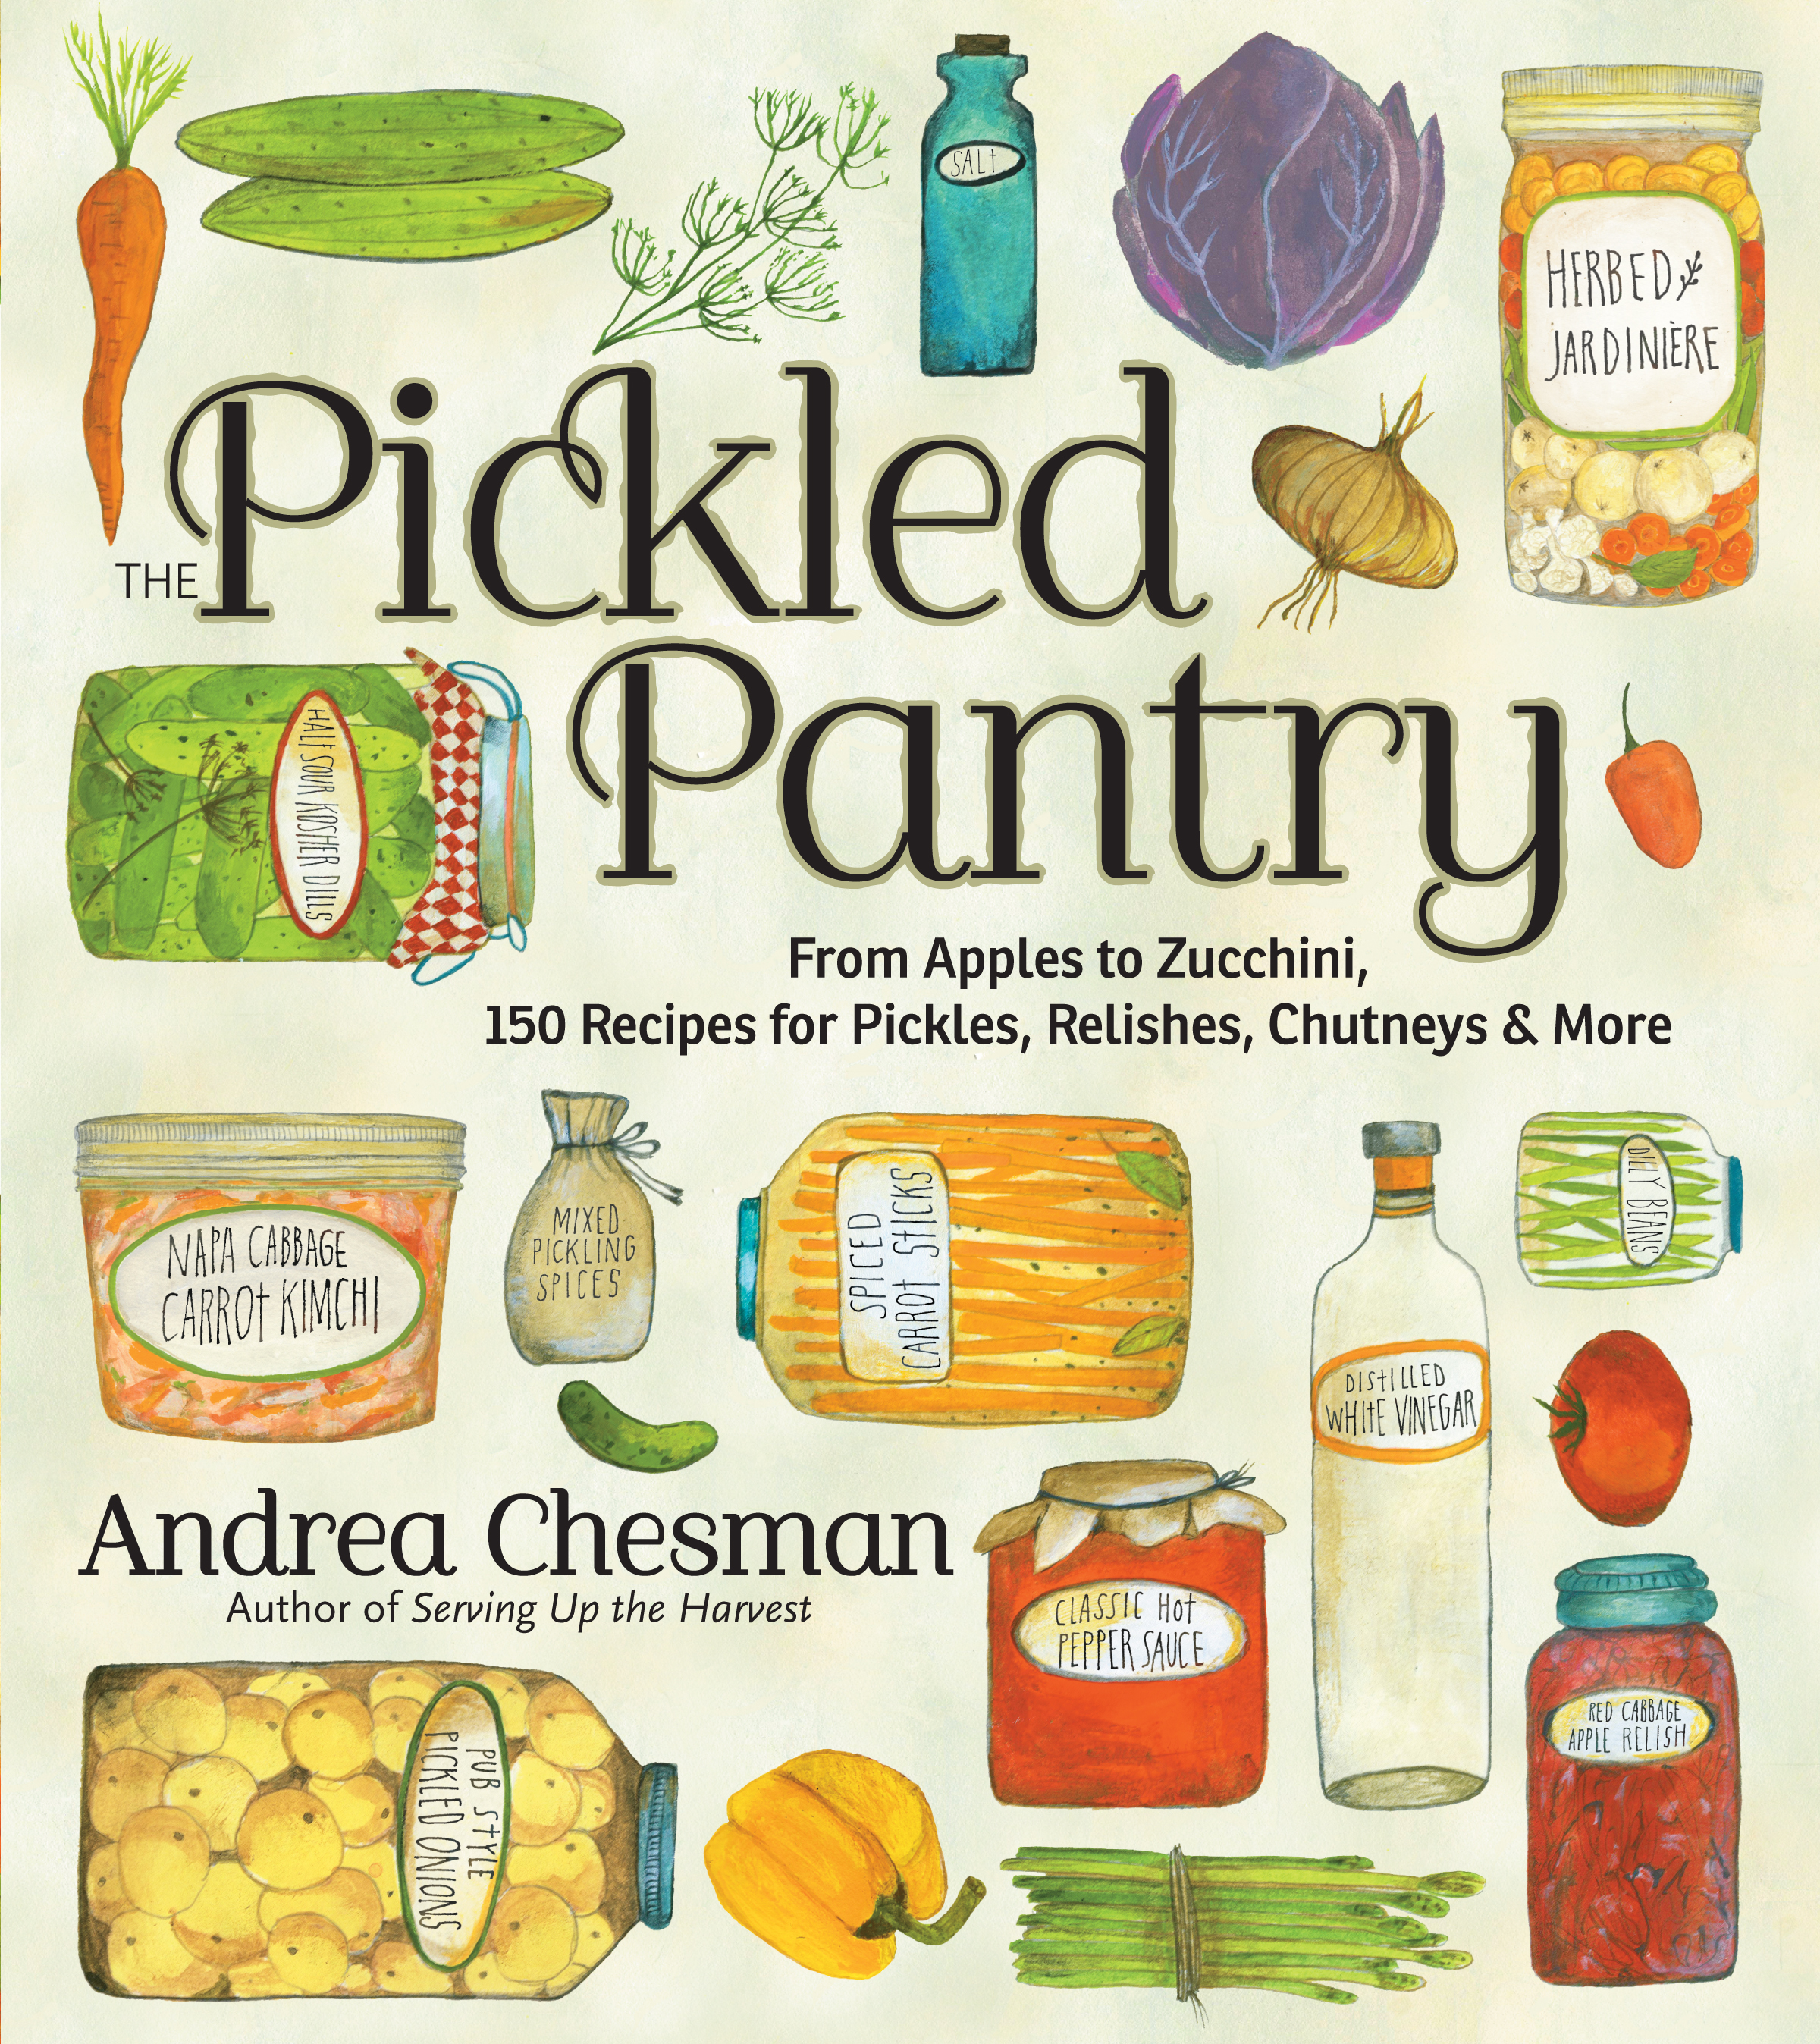 The Pickled Pantry From Apples to Zucchini, 150 Recipes for Pickles, Relishes, Chutneys & More - Andrea Chesman